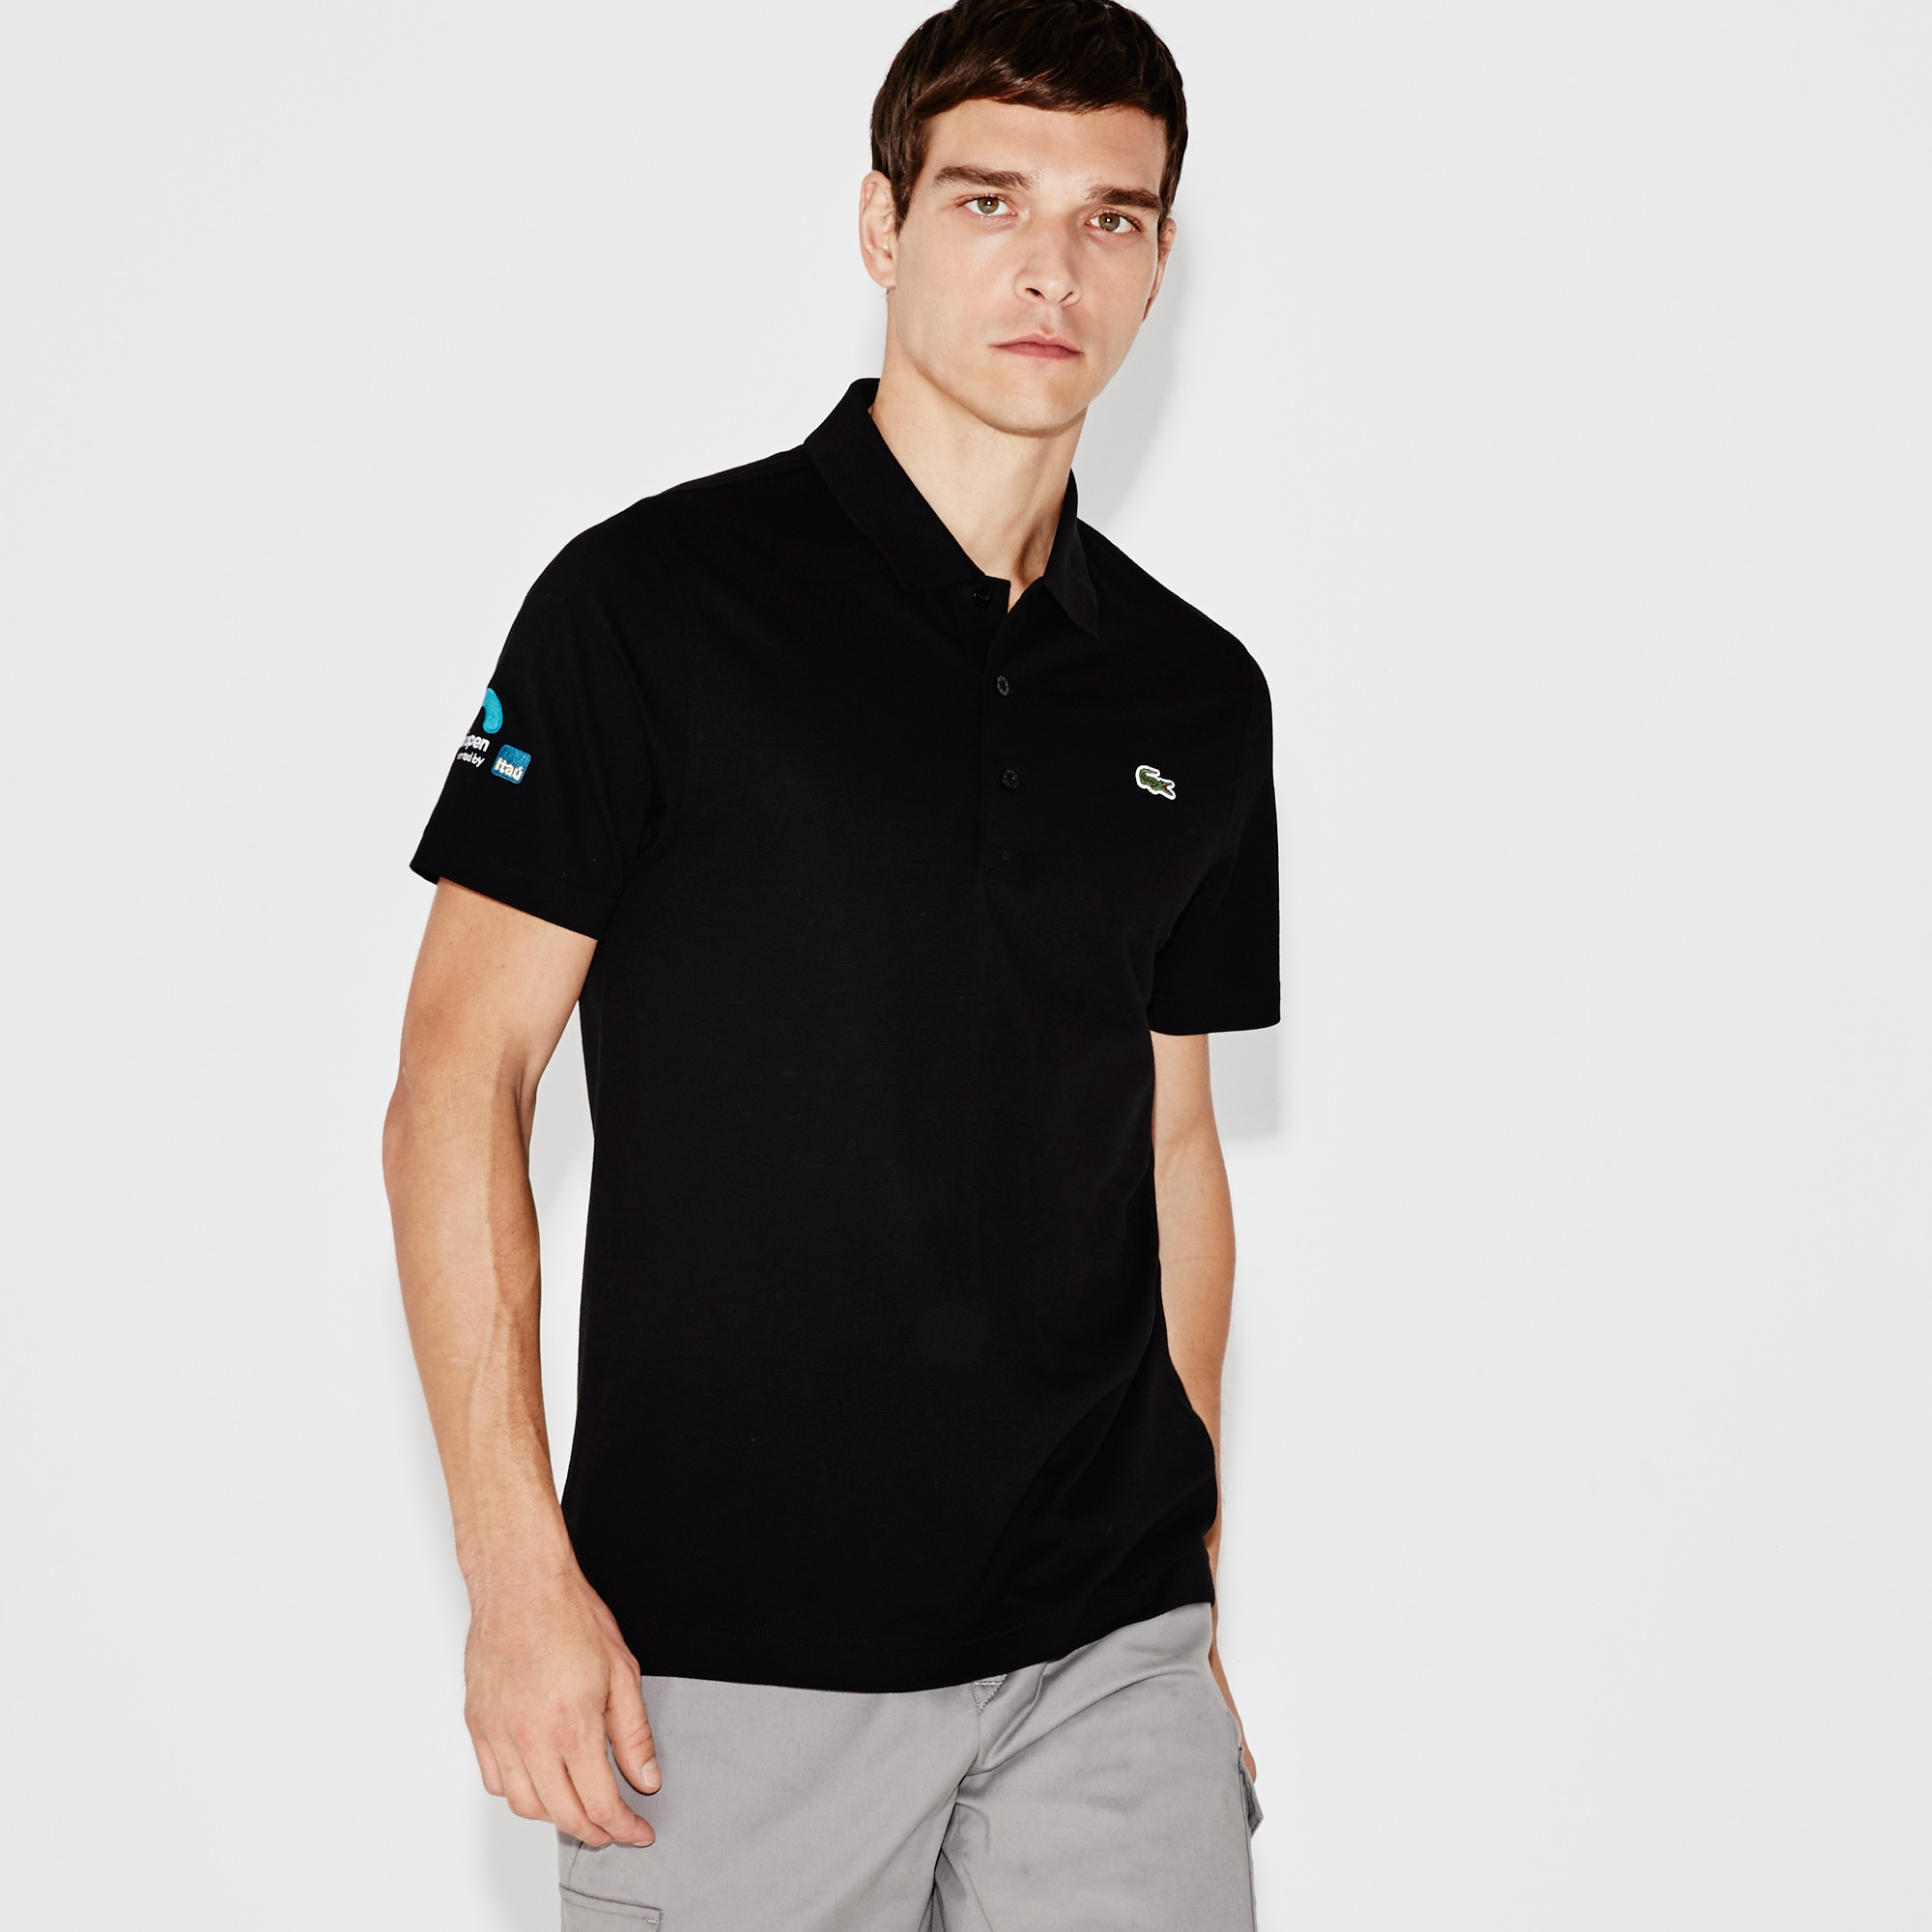 Men's SPORT Miami Open Ultra-Light Cotton Tennis Polo